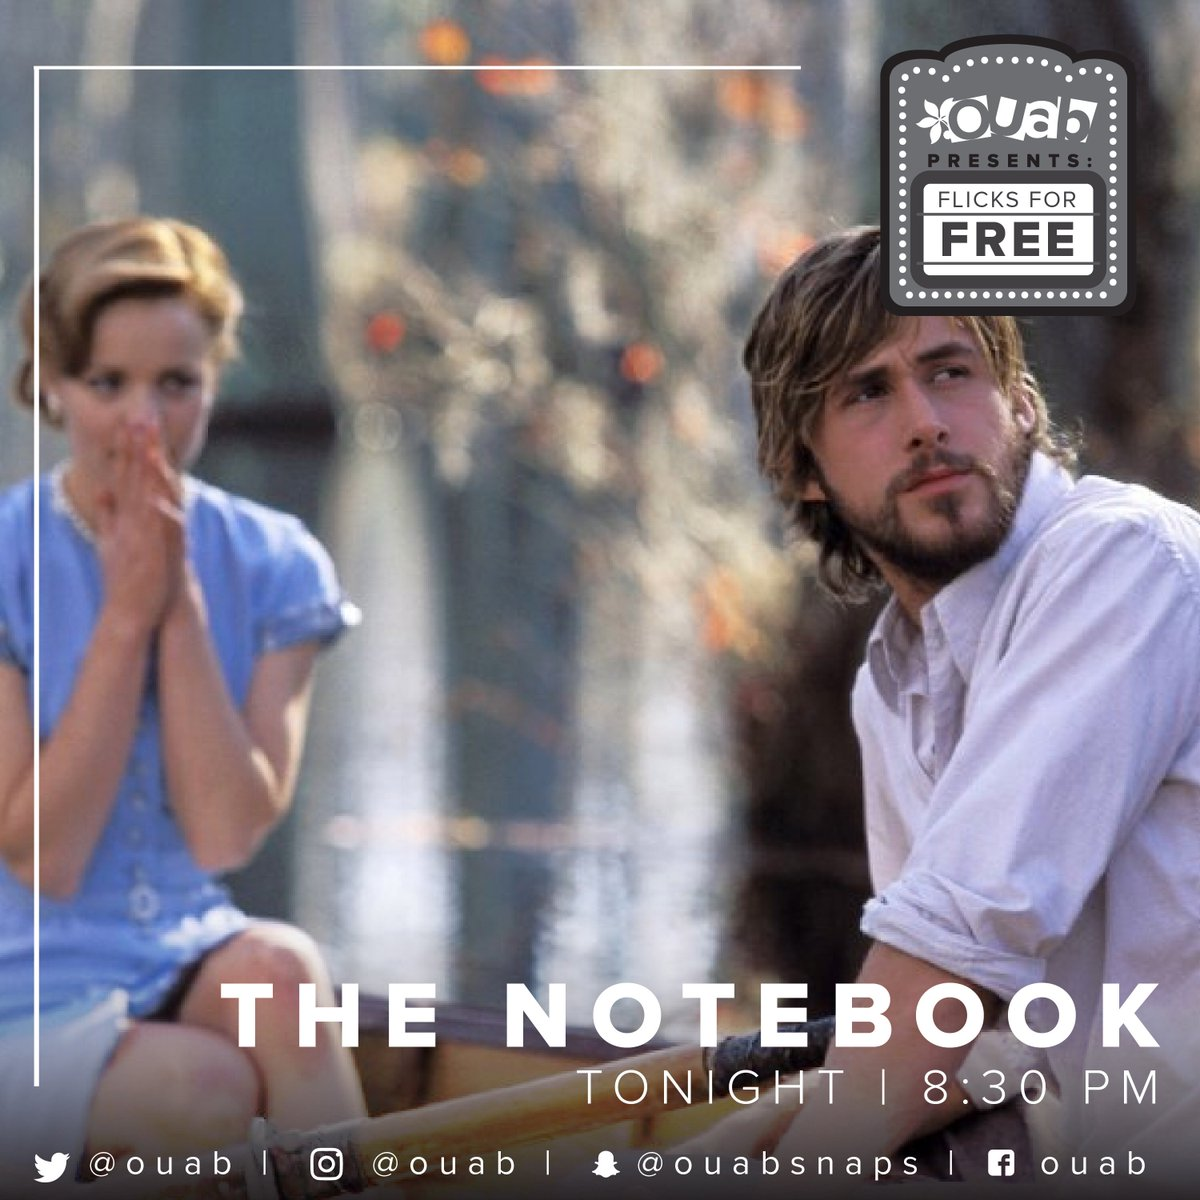 where can i watch the notebook for free